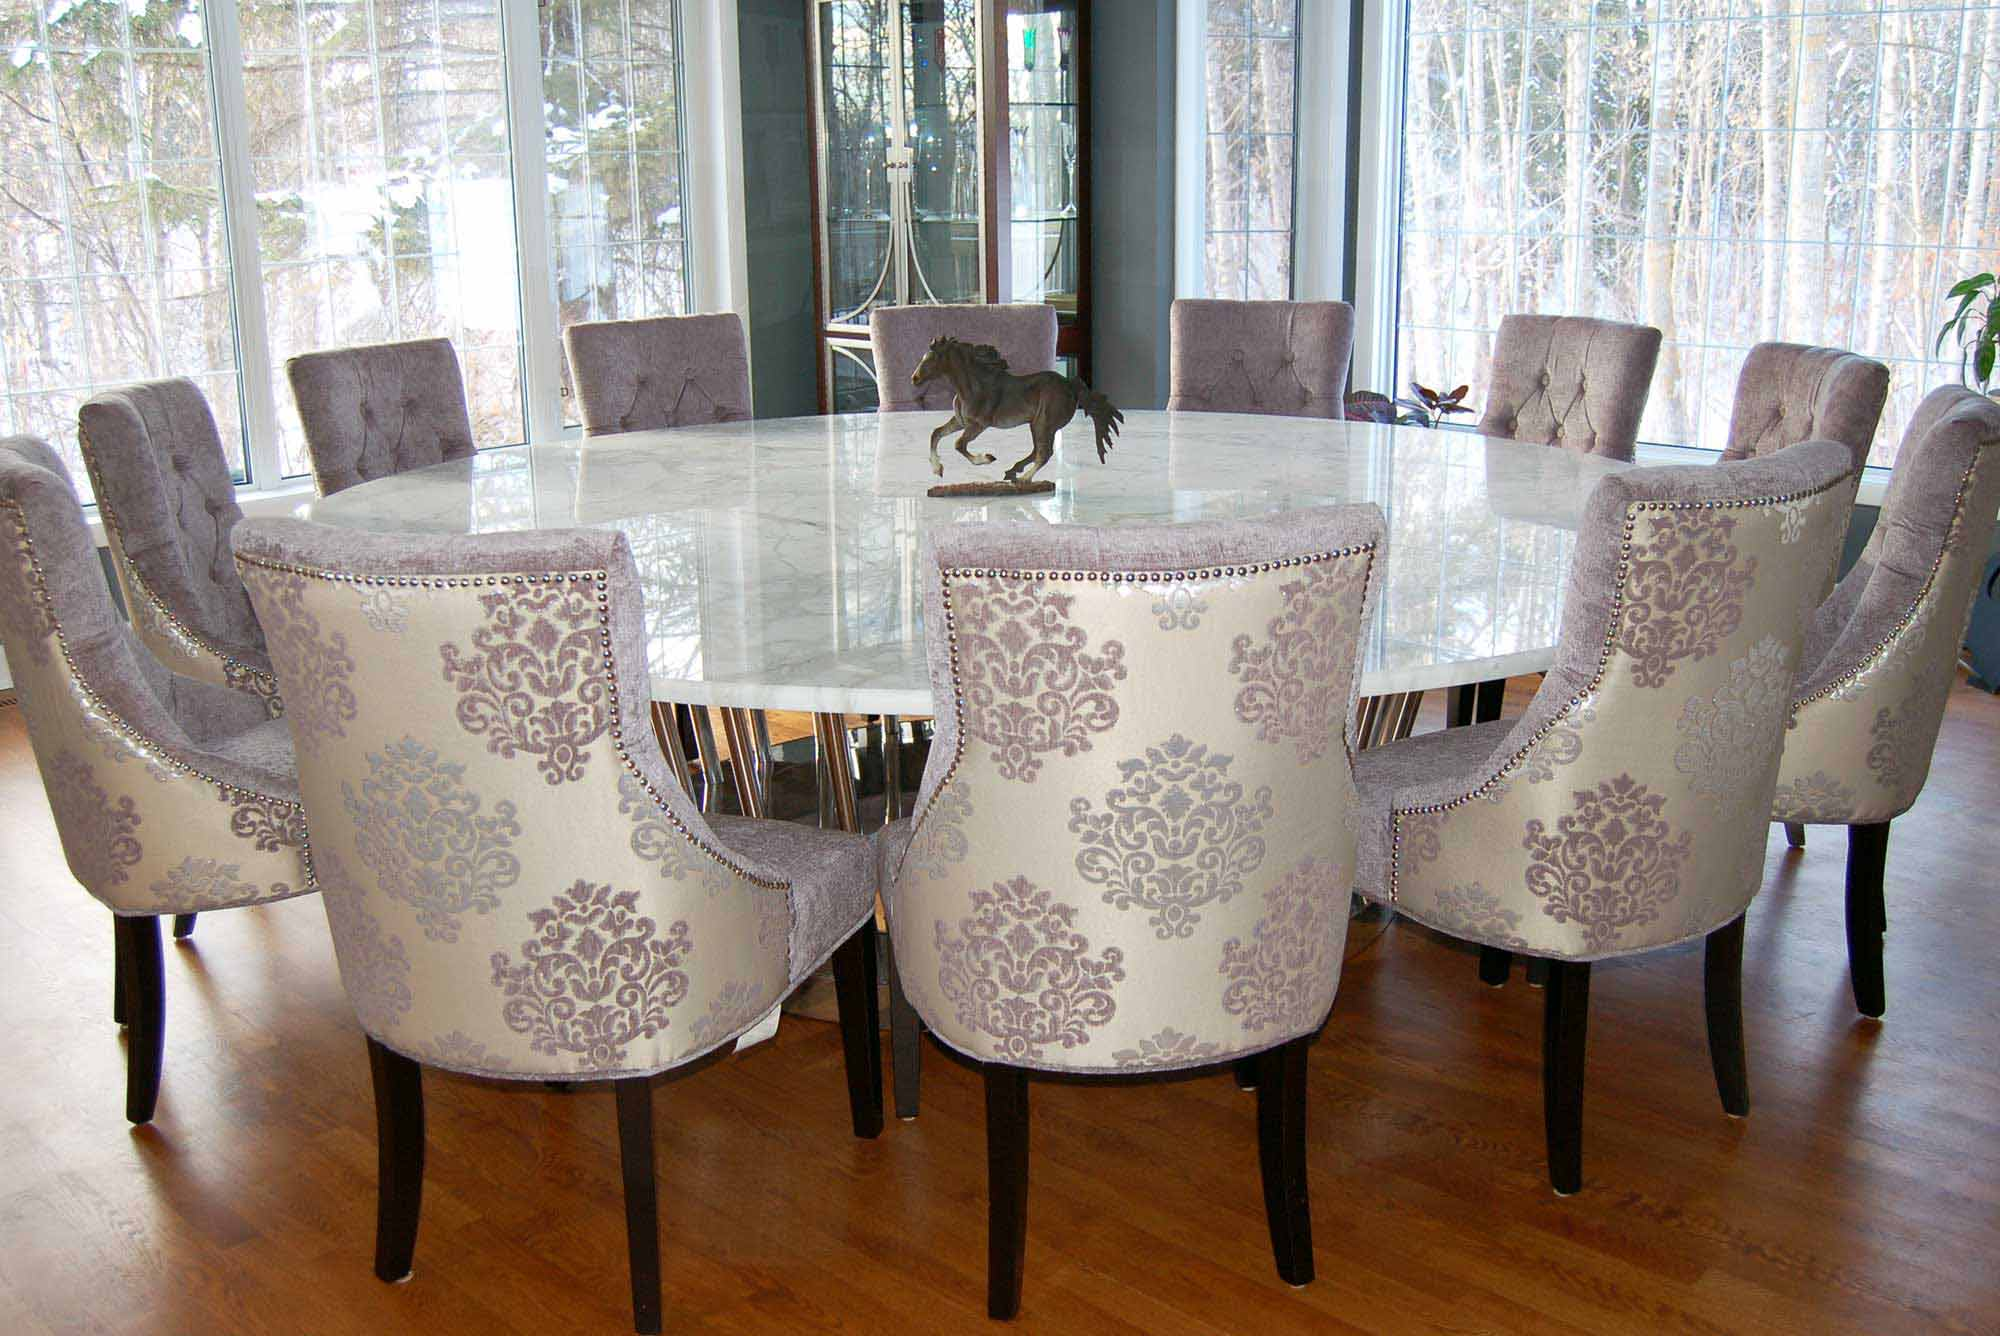 12 Person Dining Table Designs and Benefits